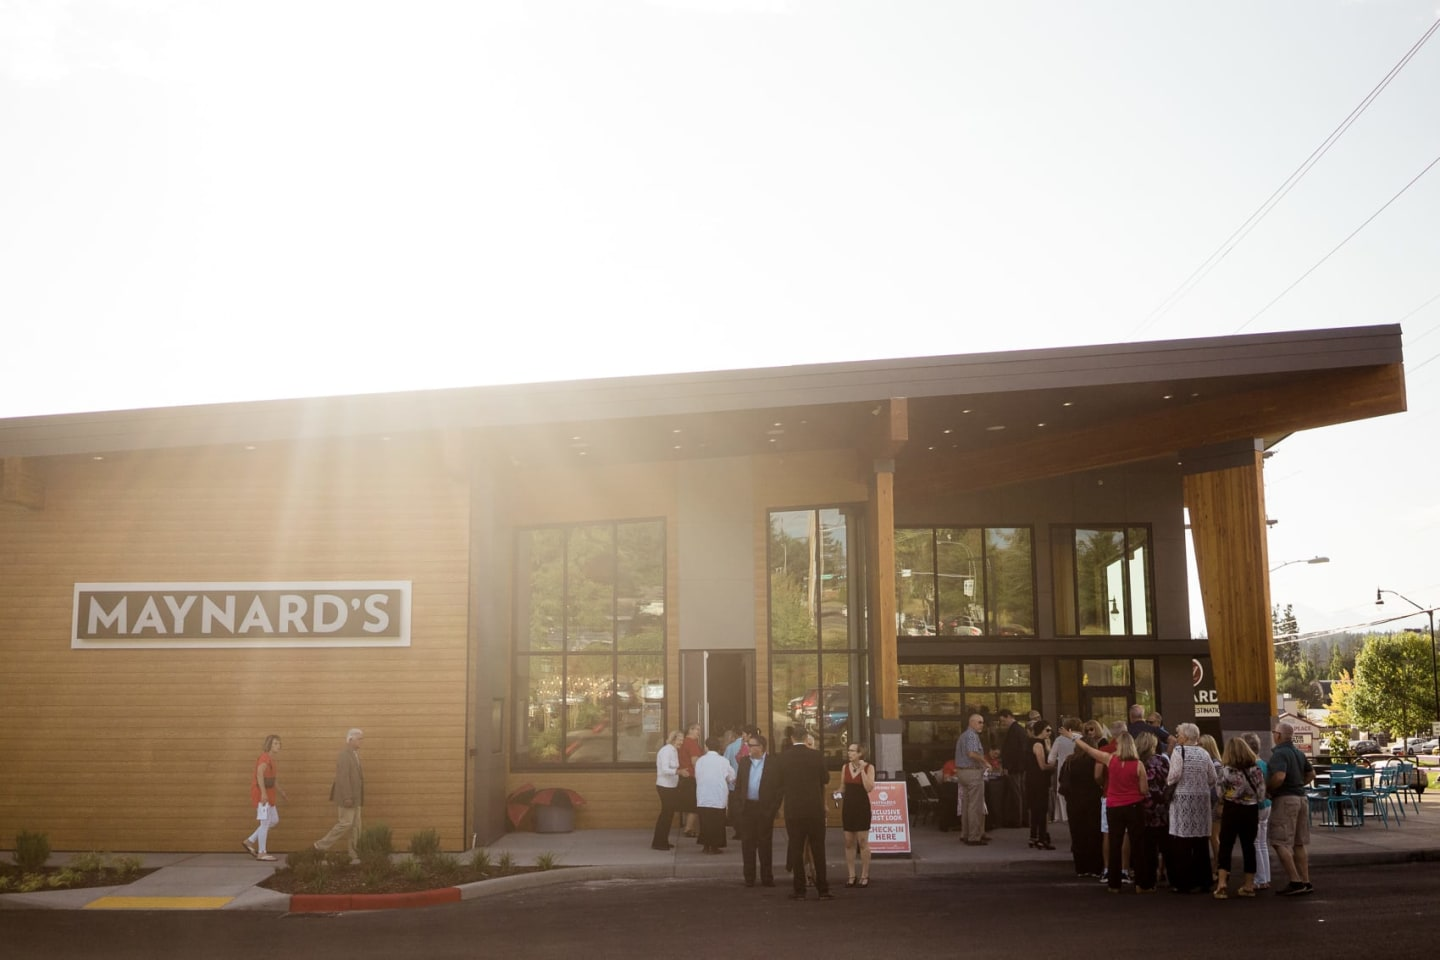 Maynard's Restaurant - Kitsap's Culinary Destination FACT SHEET - June 2019